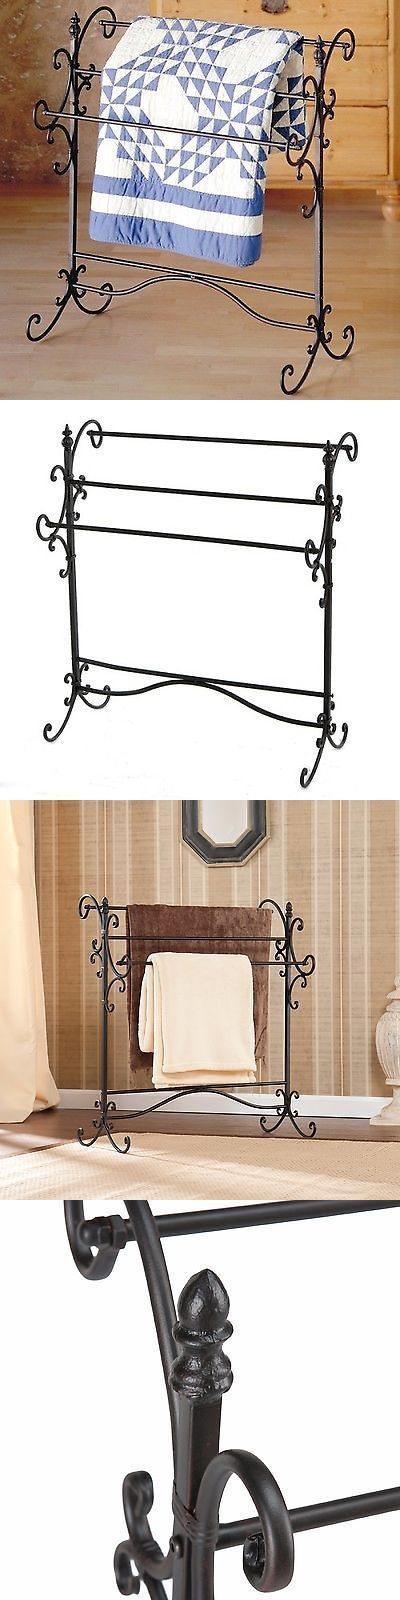 Quilt Hangers And Stands 83959 Quilt Rack Vintage Wrought Iron